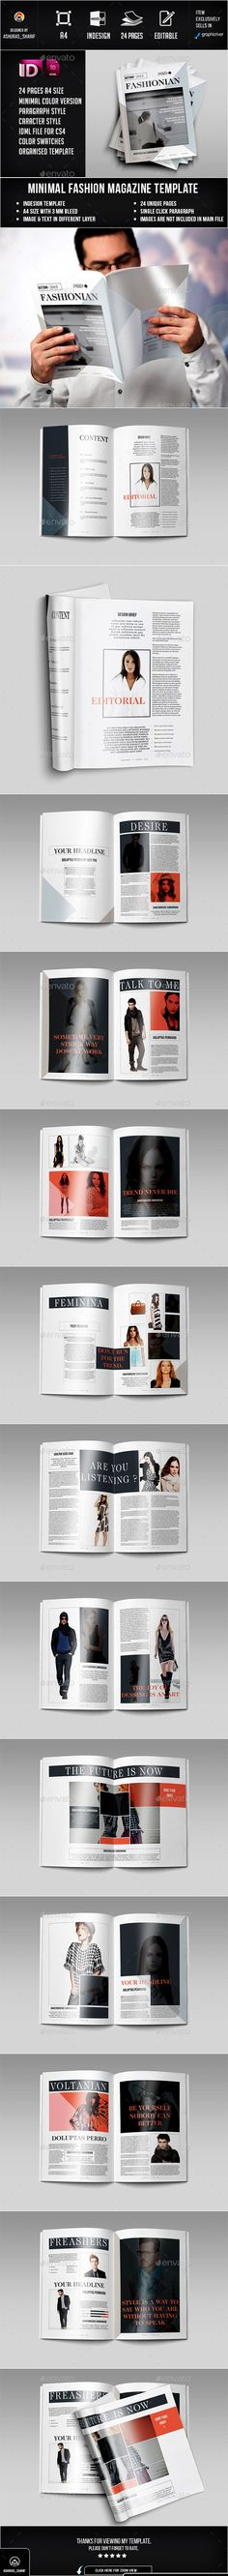 Fashion Magazine 24 Page Layout Template InDesign INDD #design #journal Download: http://graphicriver.net/item/fashion-magazine-02/13116504?ref=ksioks